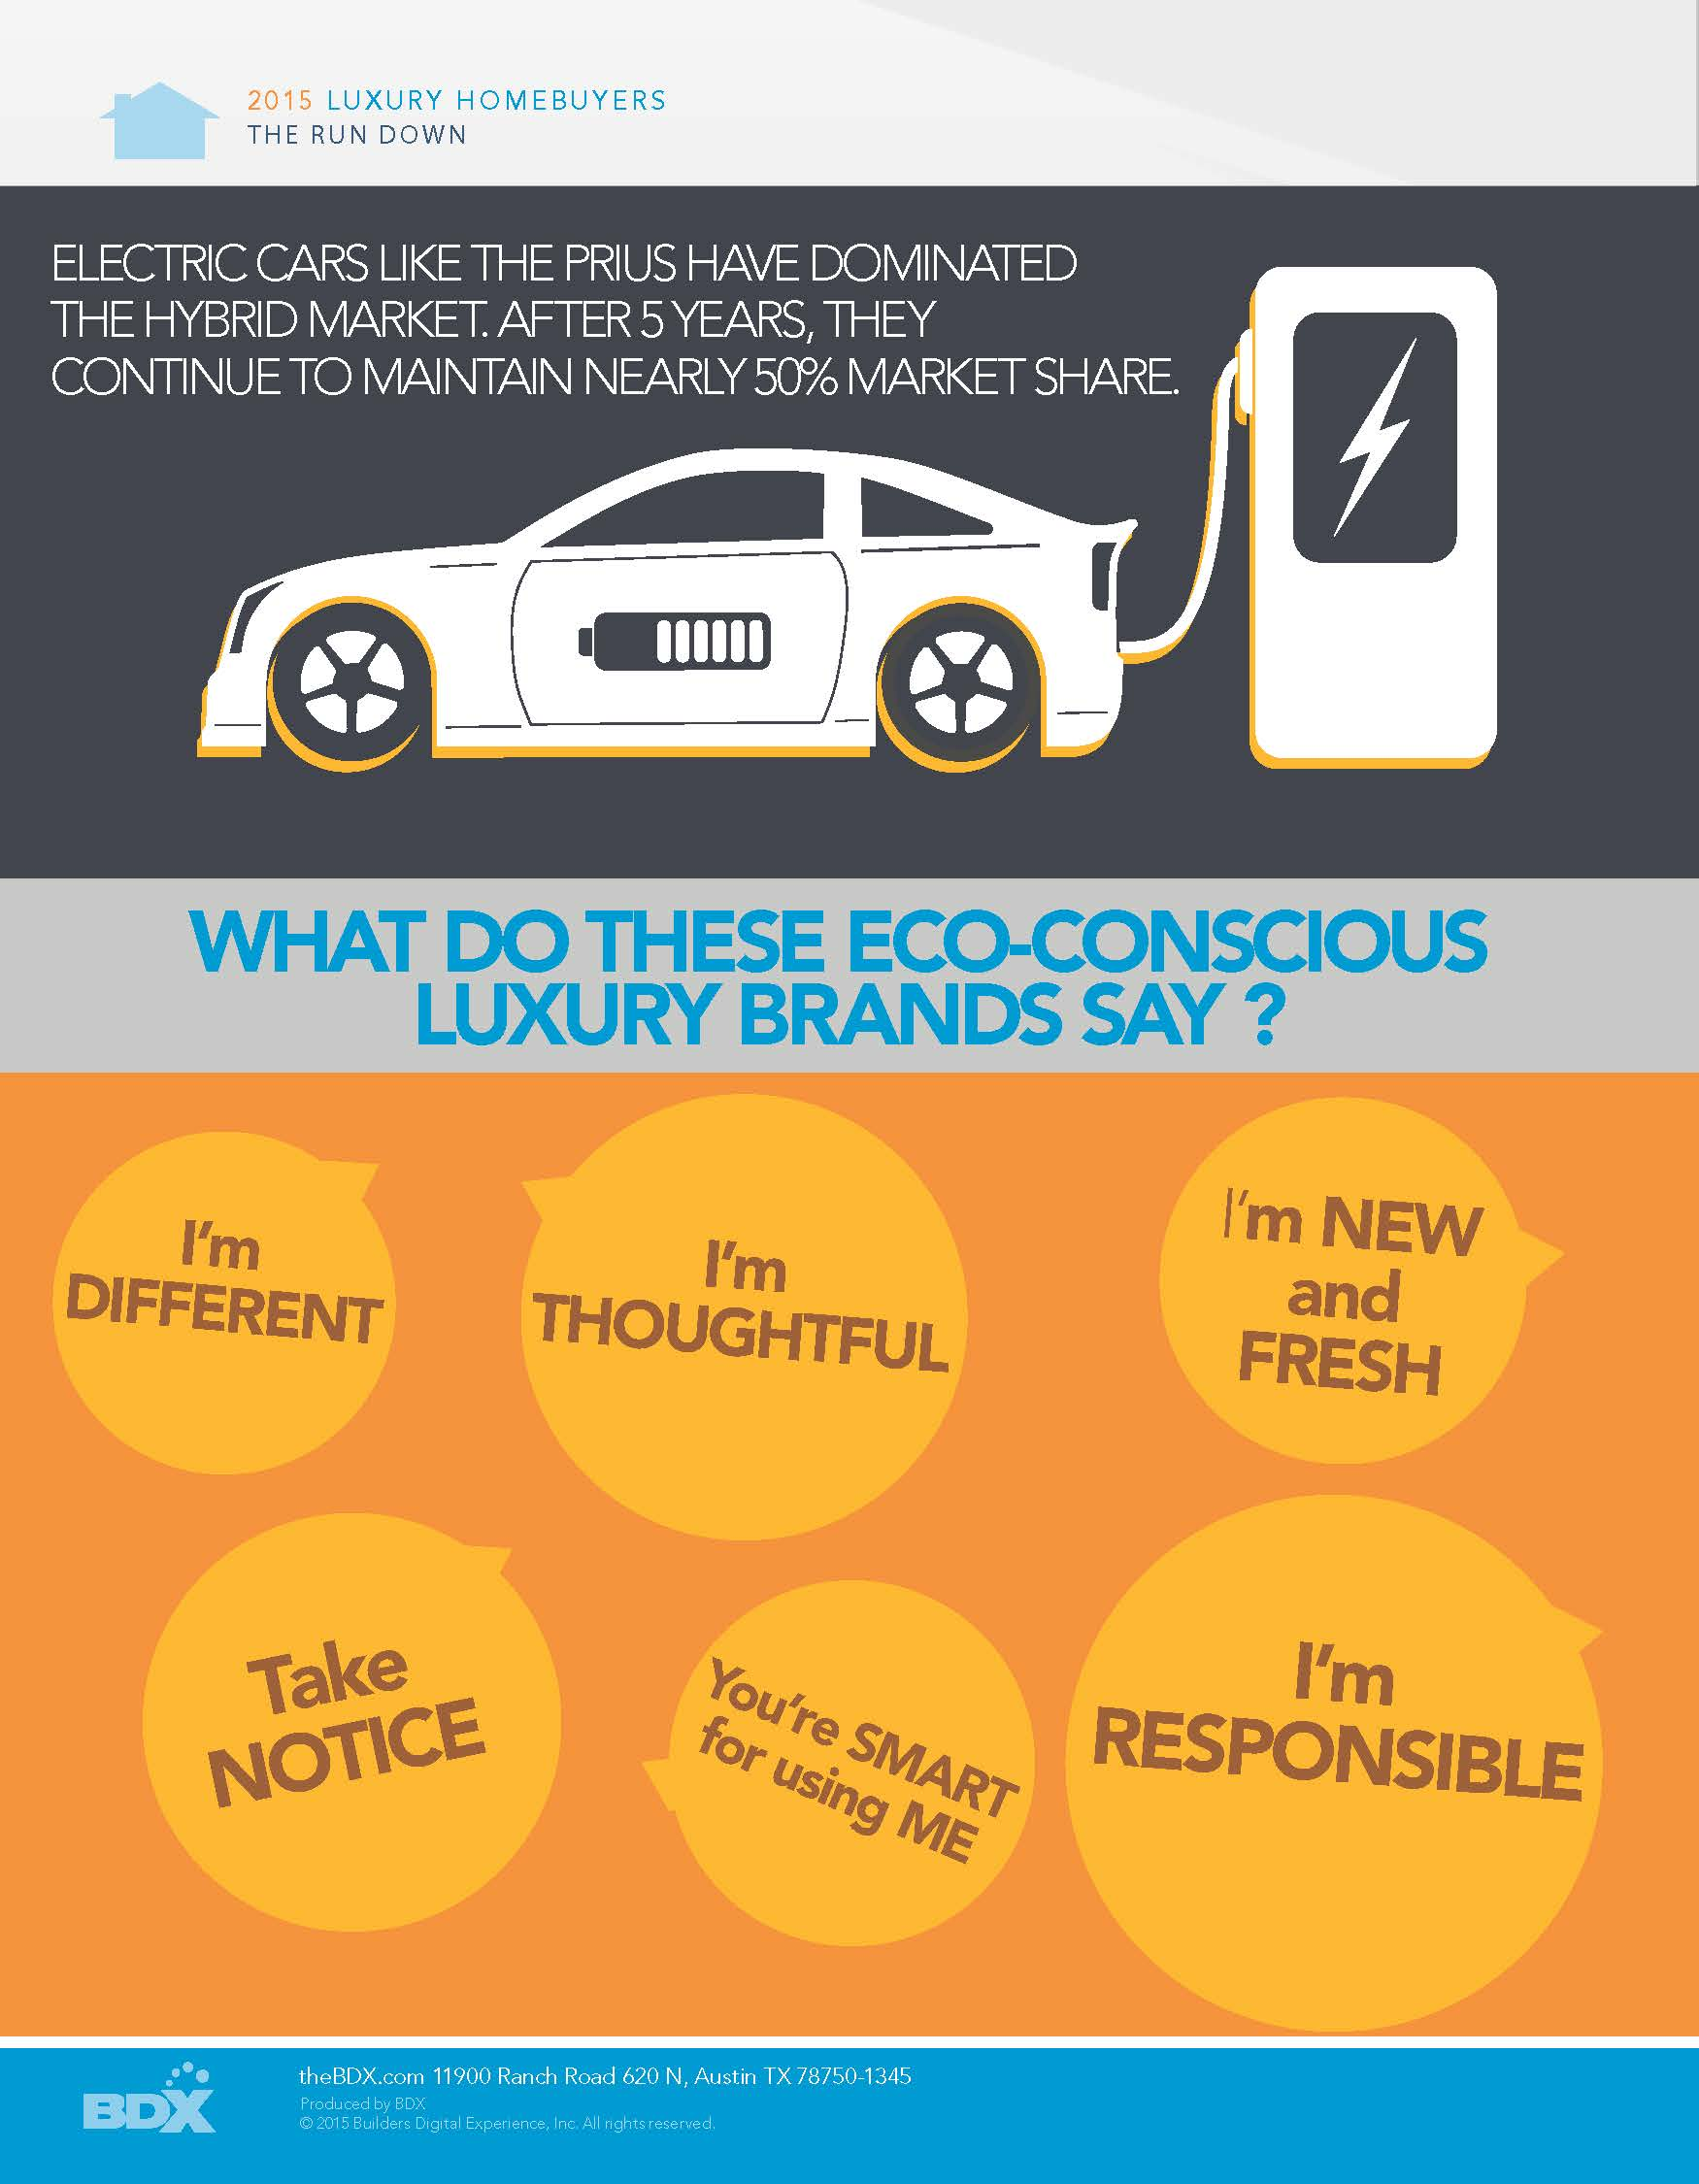 Infographic reveals information about the luxury homebuyer.